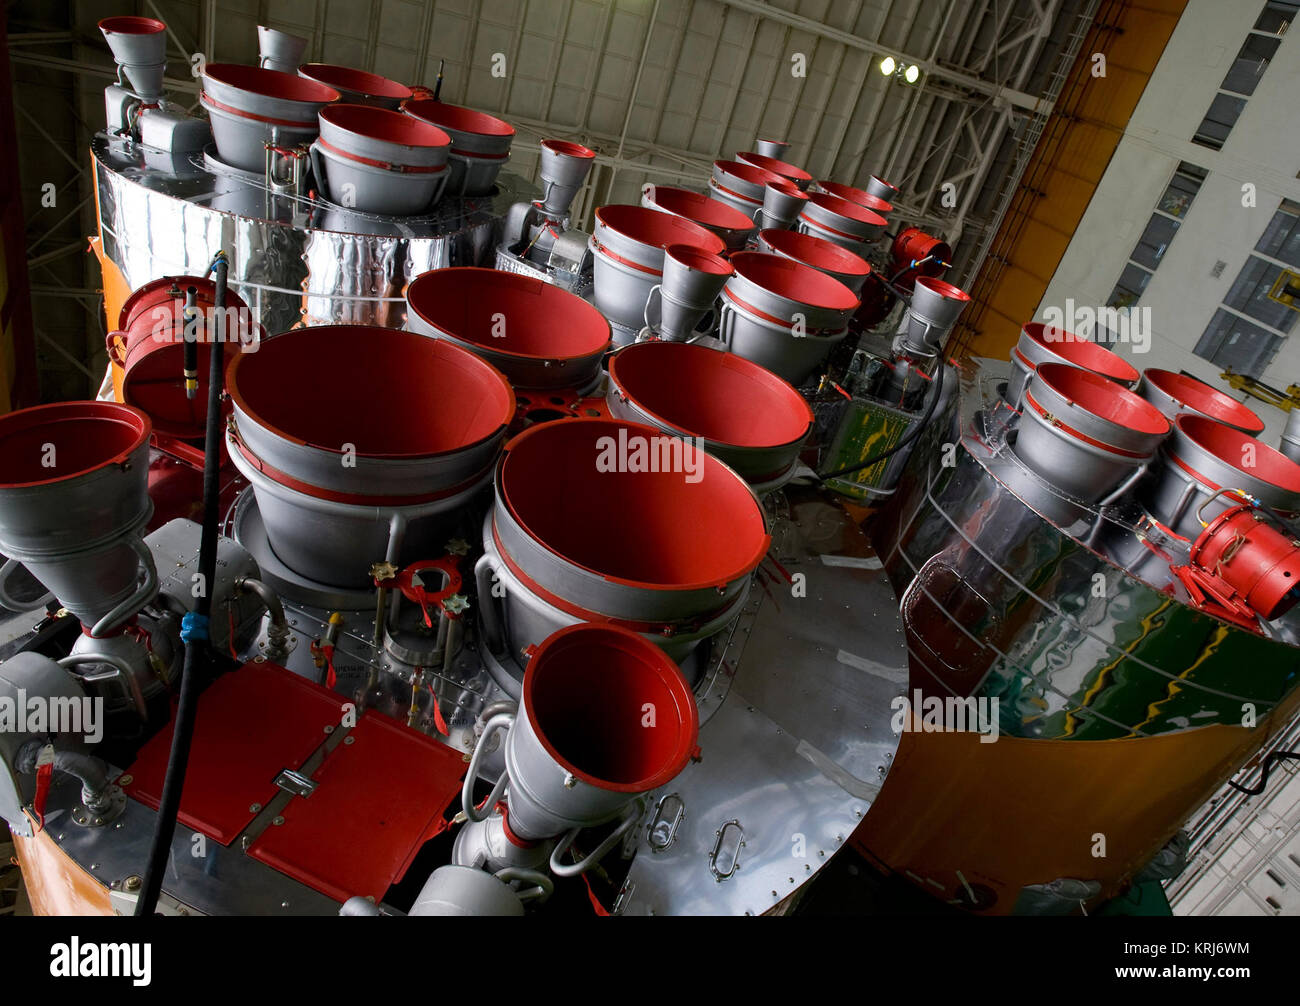 The boosters of the Soyuz rocket are seen as the Soyuz TMA-14 spacecraft and boosters are assembled Monday, March - Stock Image